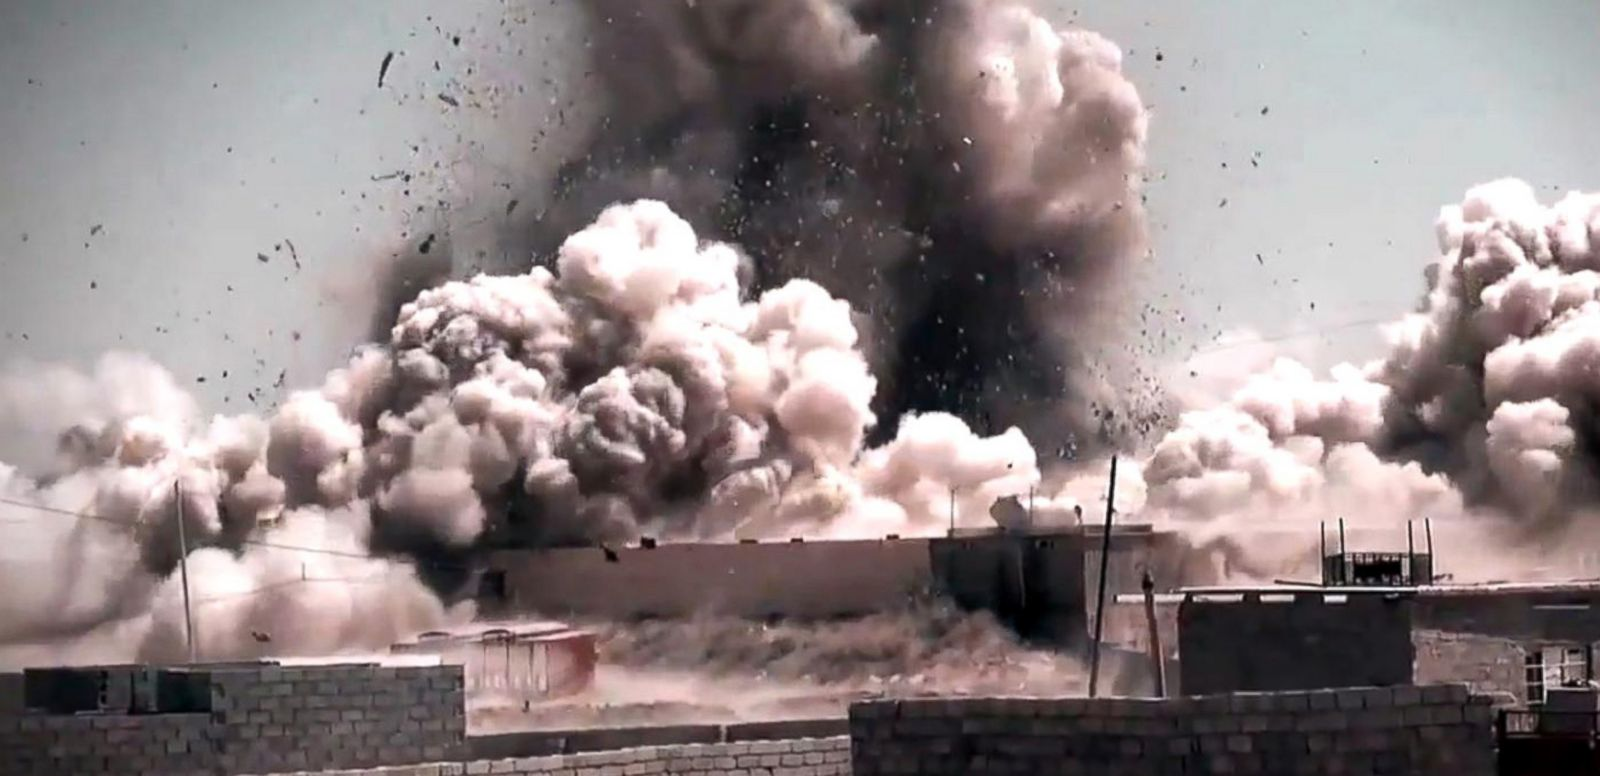 VIDEO: U.S. at Odds With Russia Over Syrian Airstrikes